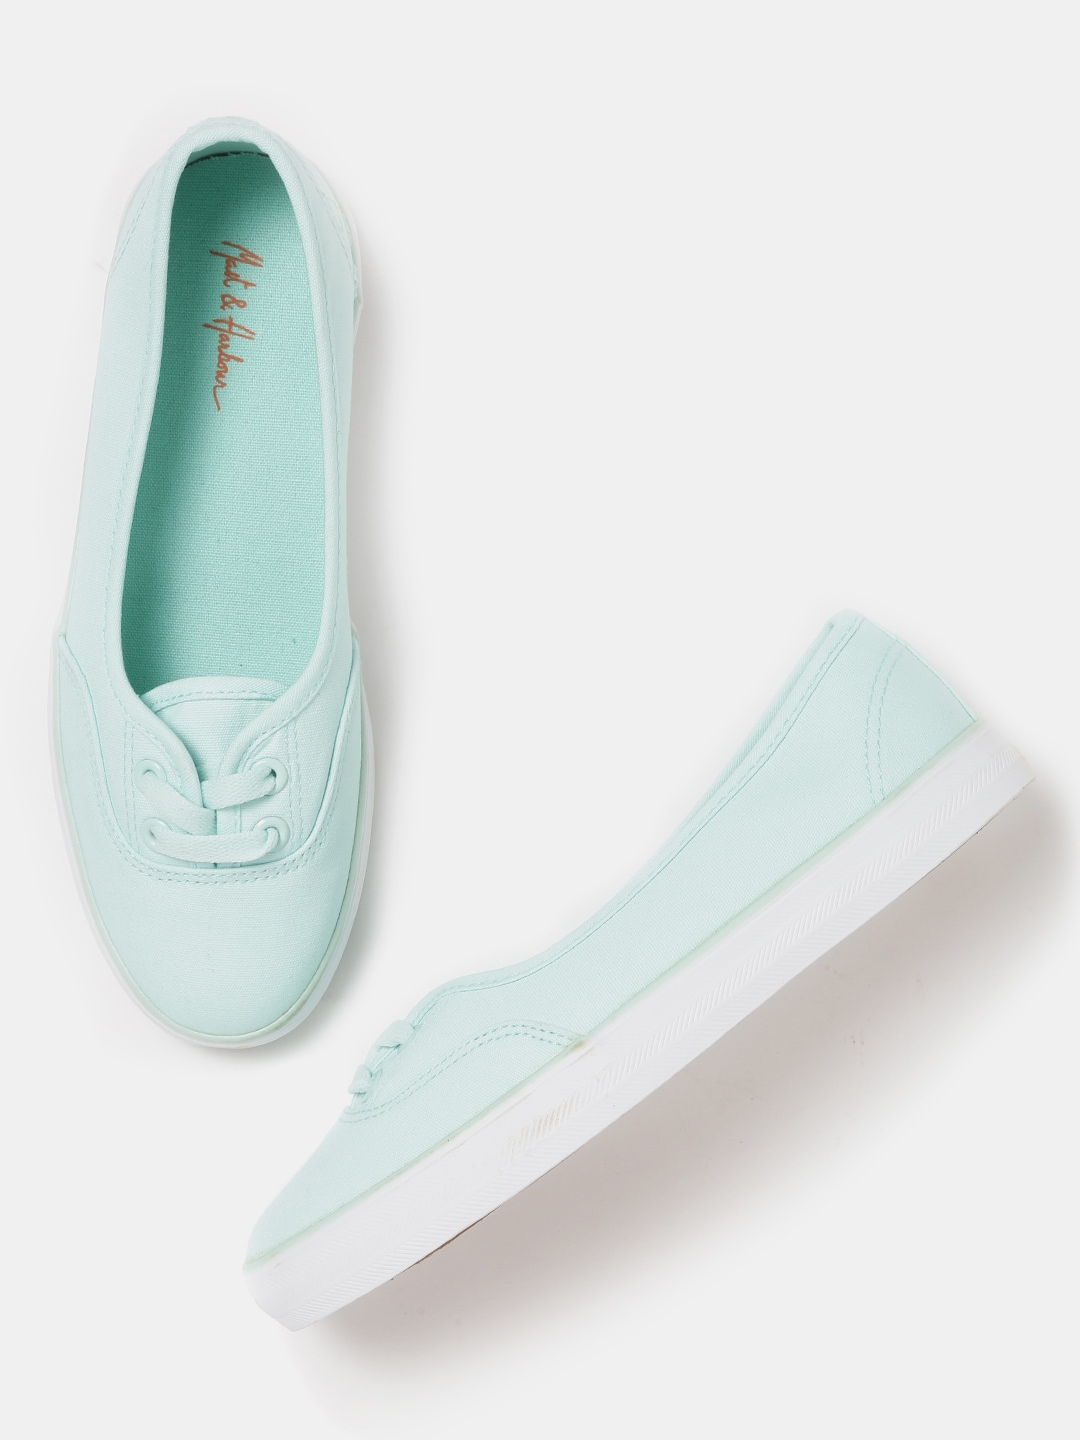 Mast & Harbour Women Mint Green Sneakers Price in India